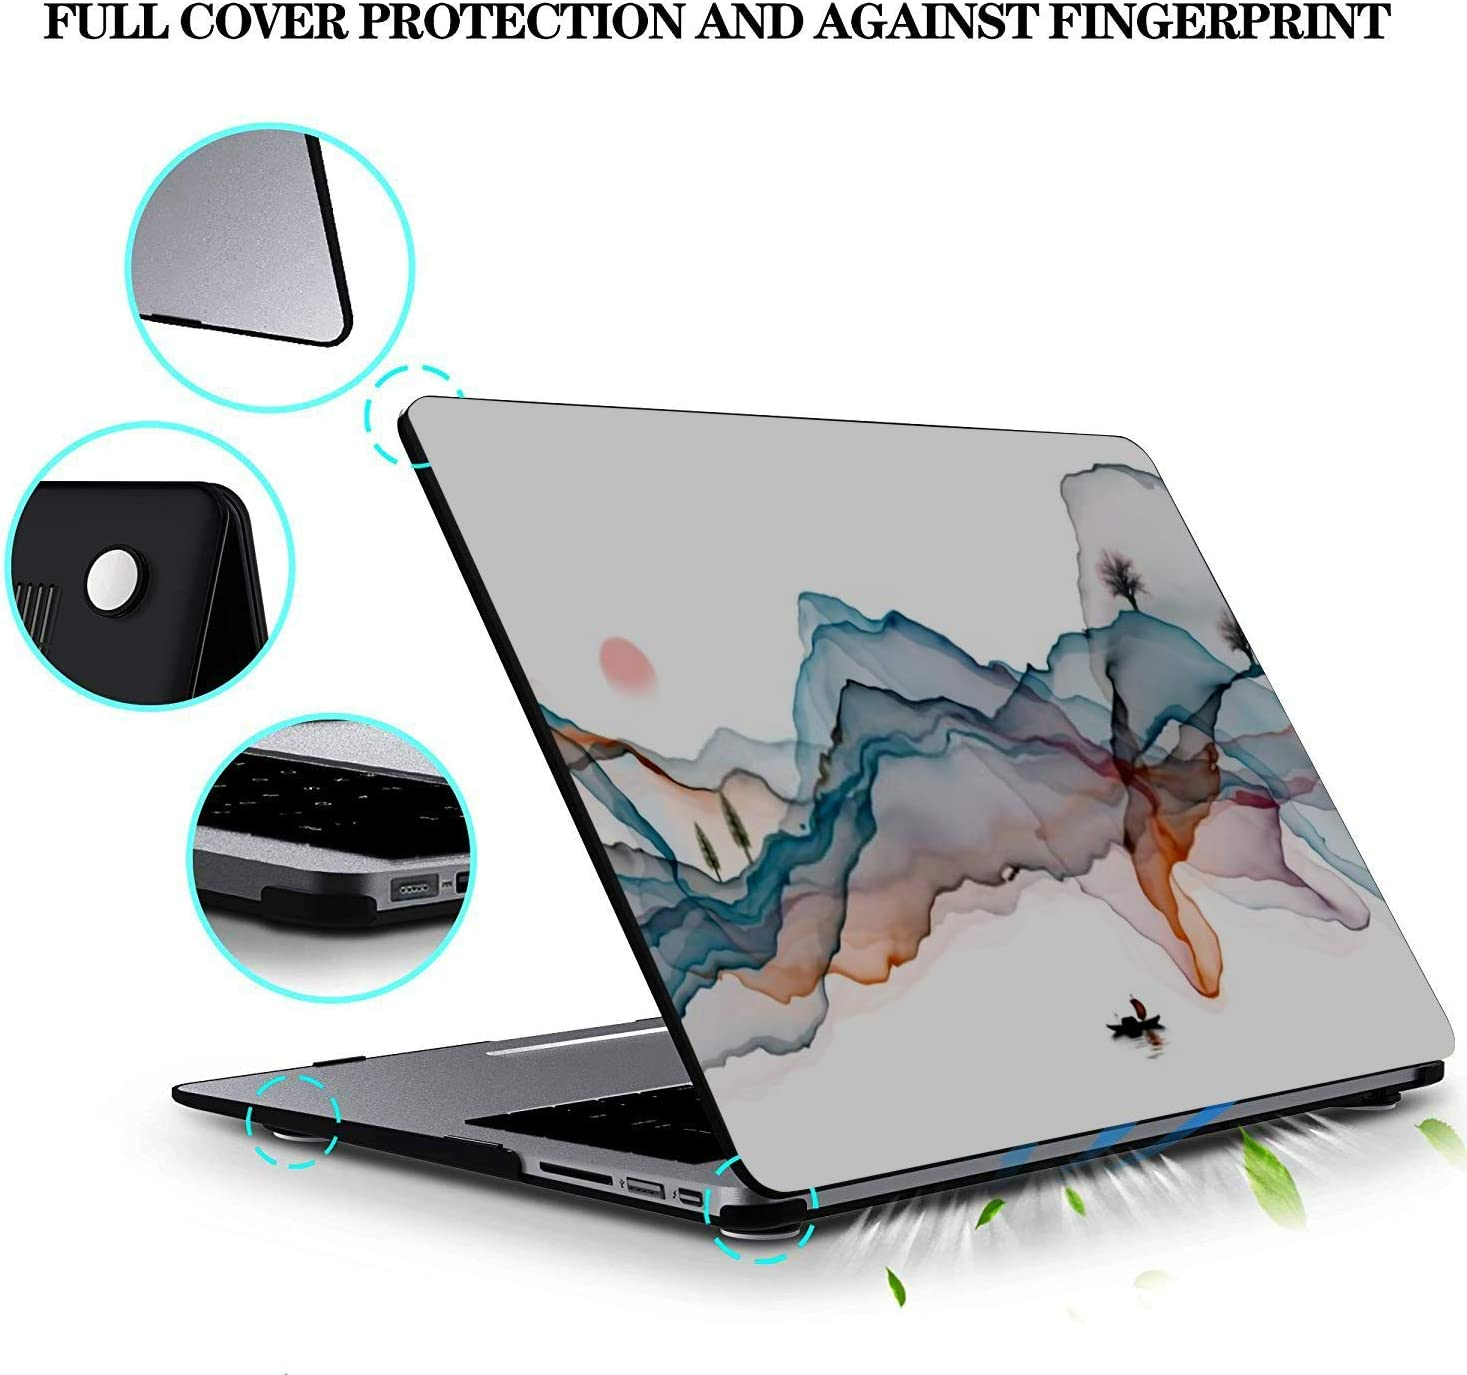 MacBook Pro Case Abstract Ink Painting Decorative Background MacBook Retina 12 A1534 Plastic Case Keyboard Cover /& Screen Protector /& Keyboard Clean